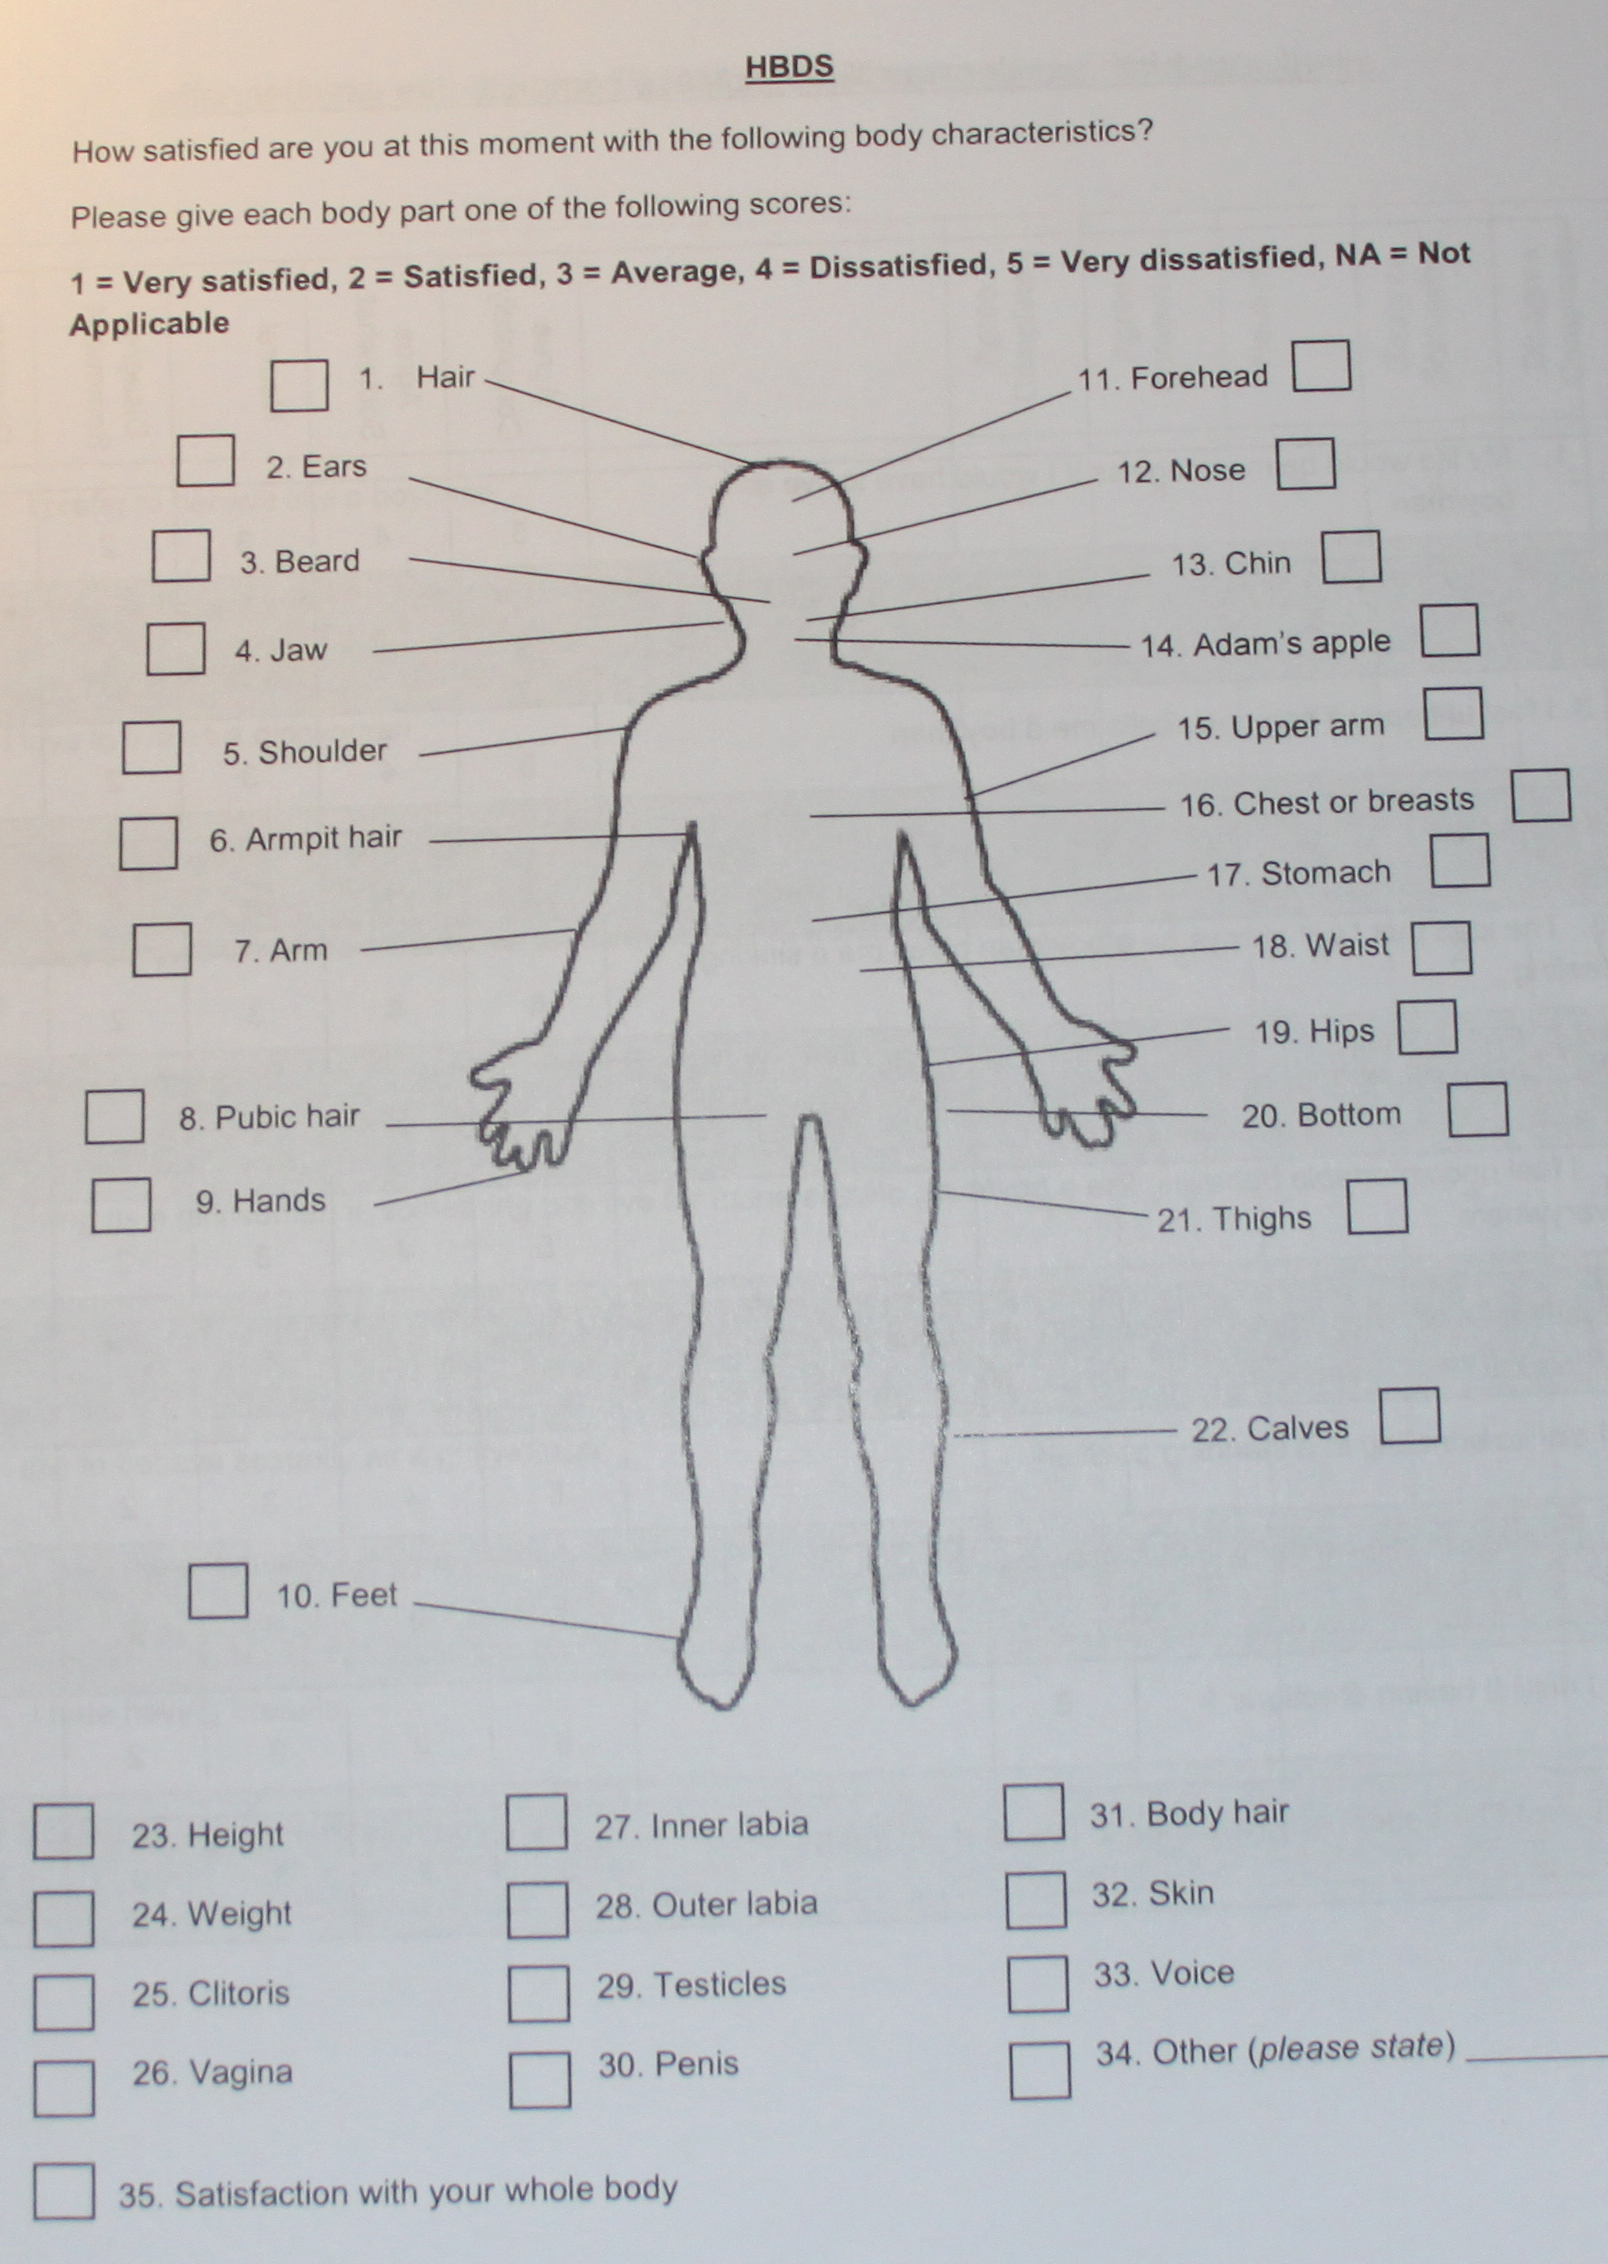 Forms from Nottingham gender clinic